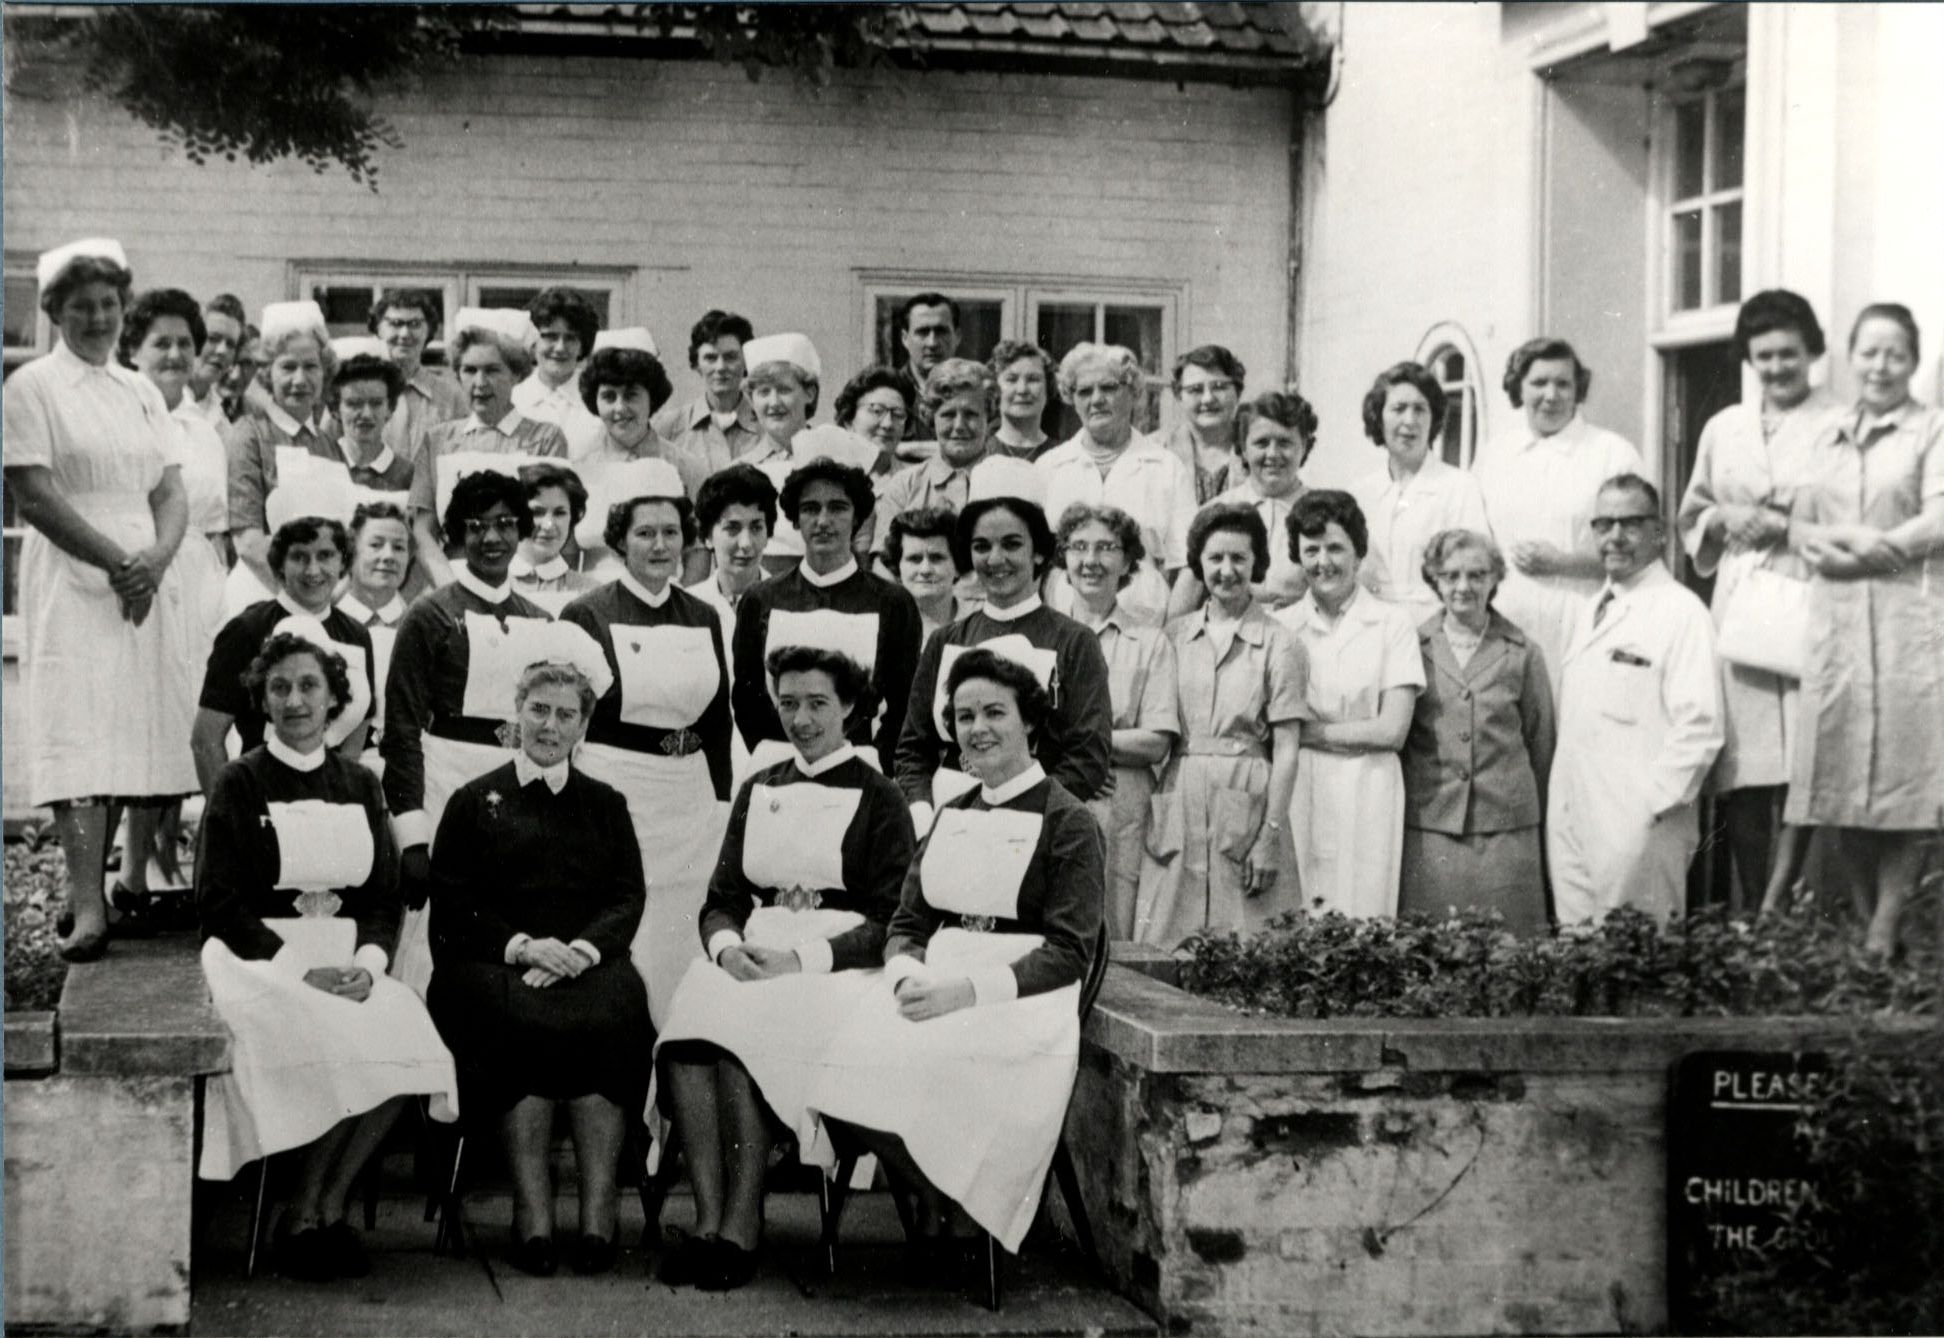 Staff of Peatree Place Maternity Hospital 1950